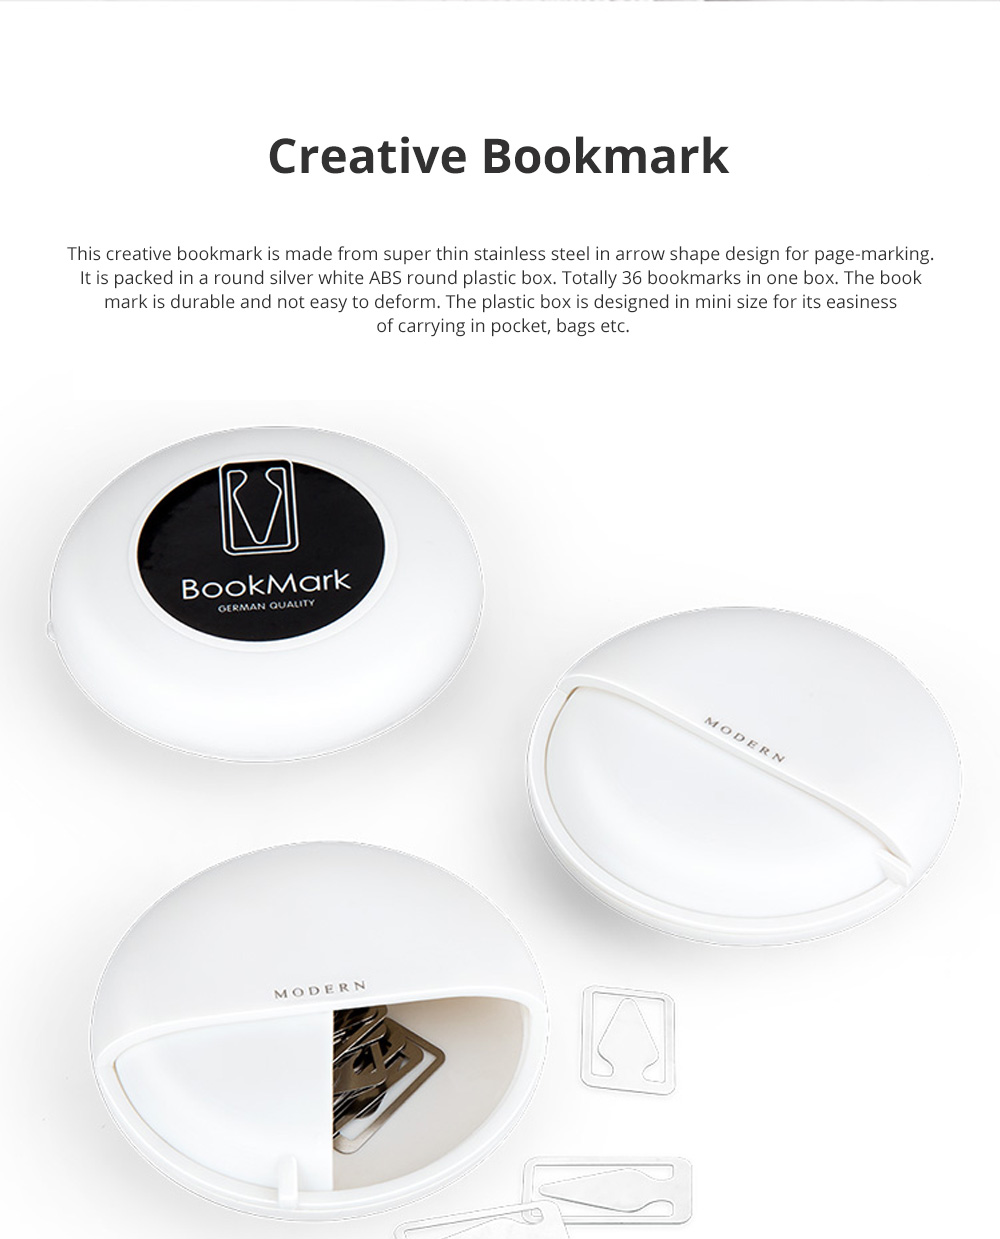 Creative Reading Bookmark for Reading Mark Mini Stainless-steel Bookmark Fresh Arrow Designed Page-marker 36pcs 0